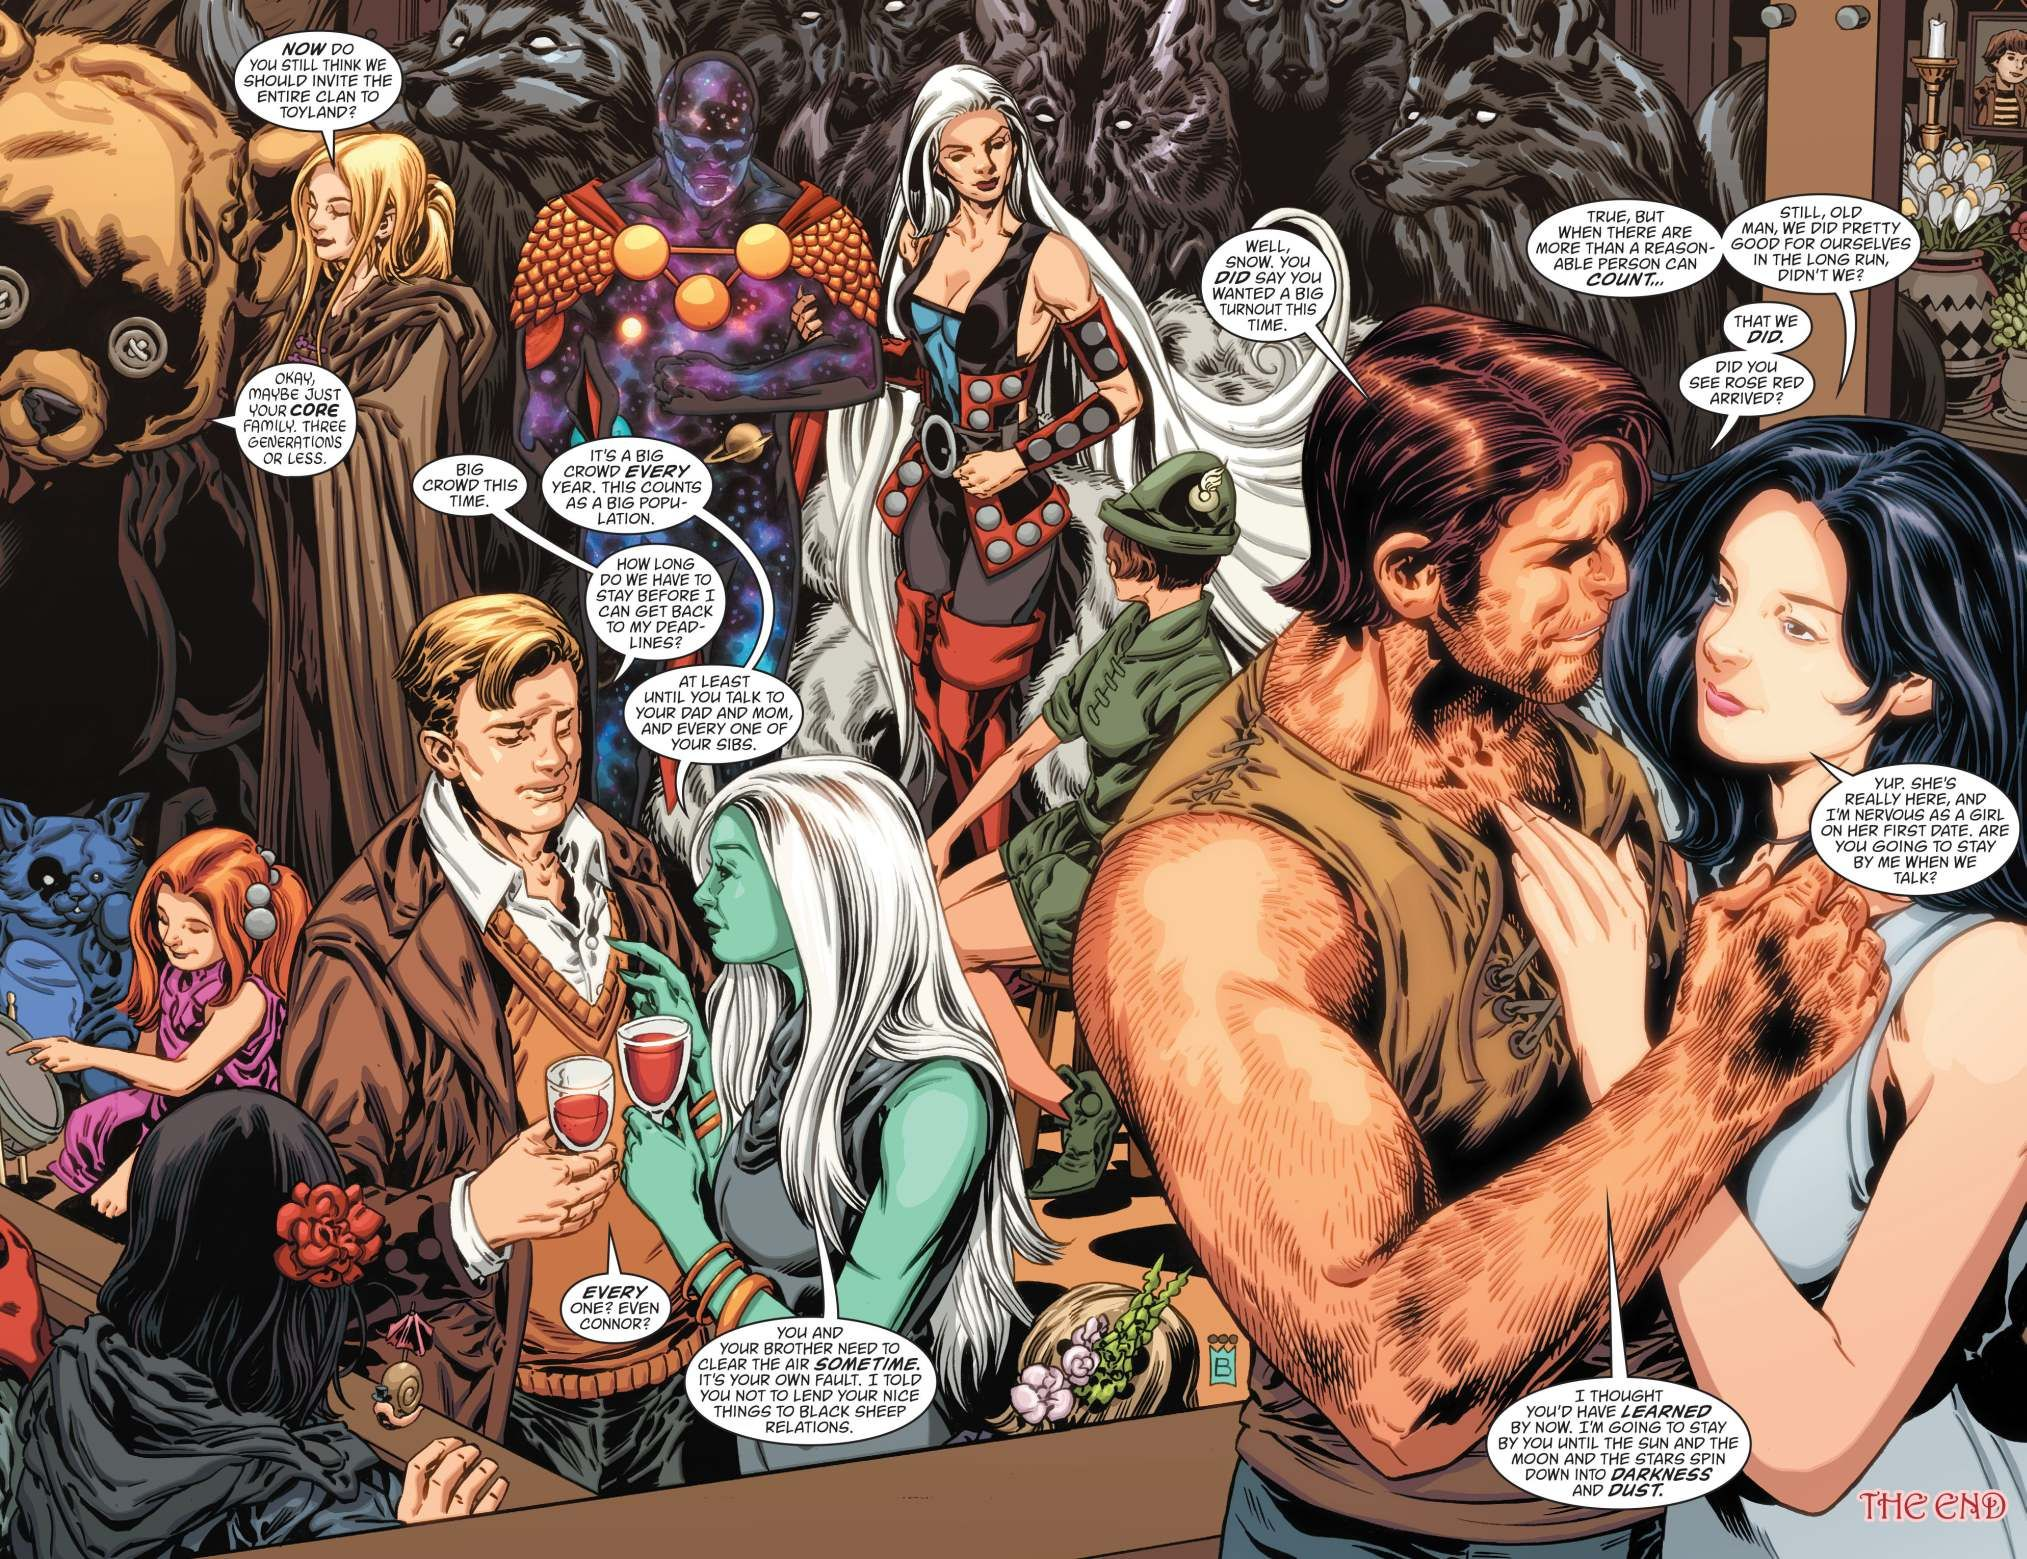 Read Comics Online Free - Fables - Chapter 150 - Page 115   Fables comic, Read  comics online free, Read comics online